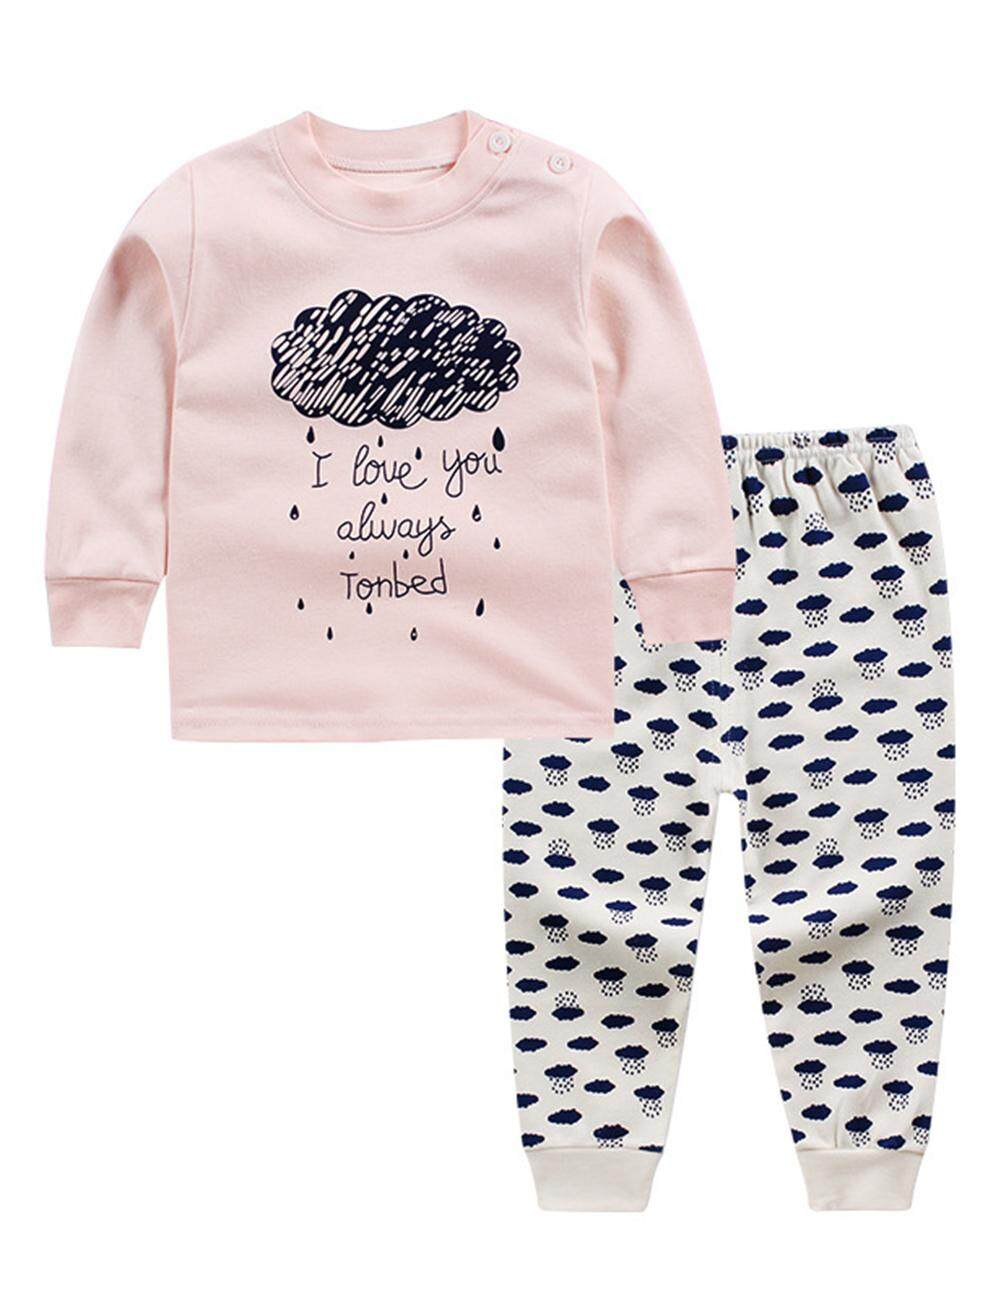 Rd 2pcs Casual Baby Underwear Set Long-Sleeve T-Shirt Long Pants Cute Pajamas Homewear Christmas Gift By Redcolourful.